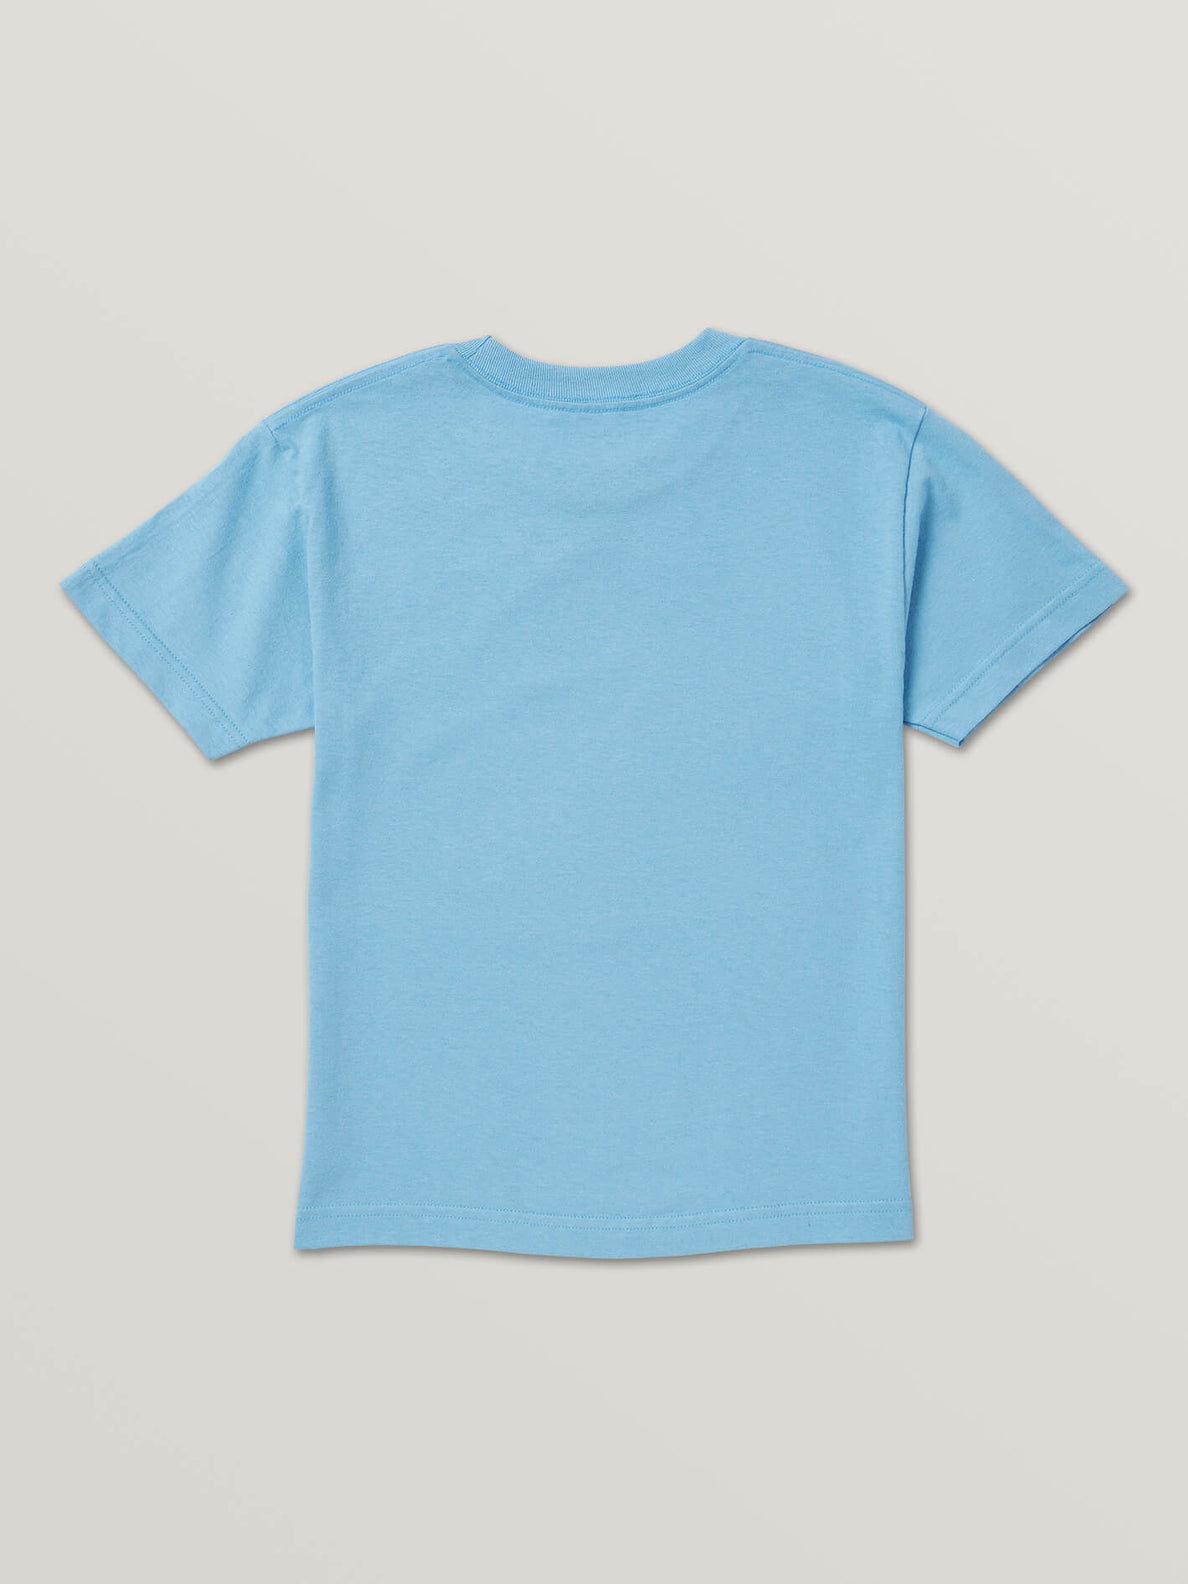 Big Boys Hot Wheels'Ñ¢ Sharkruiser Short Sleeve Tee In Light Blue, Back View